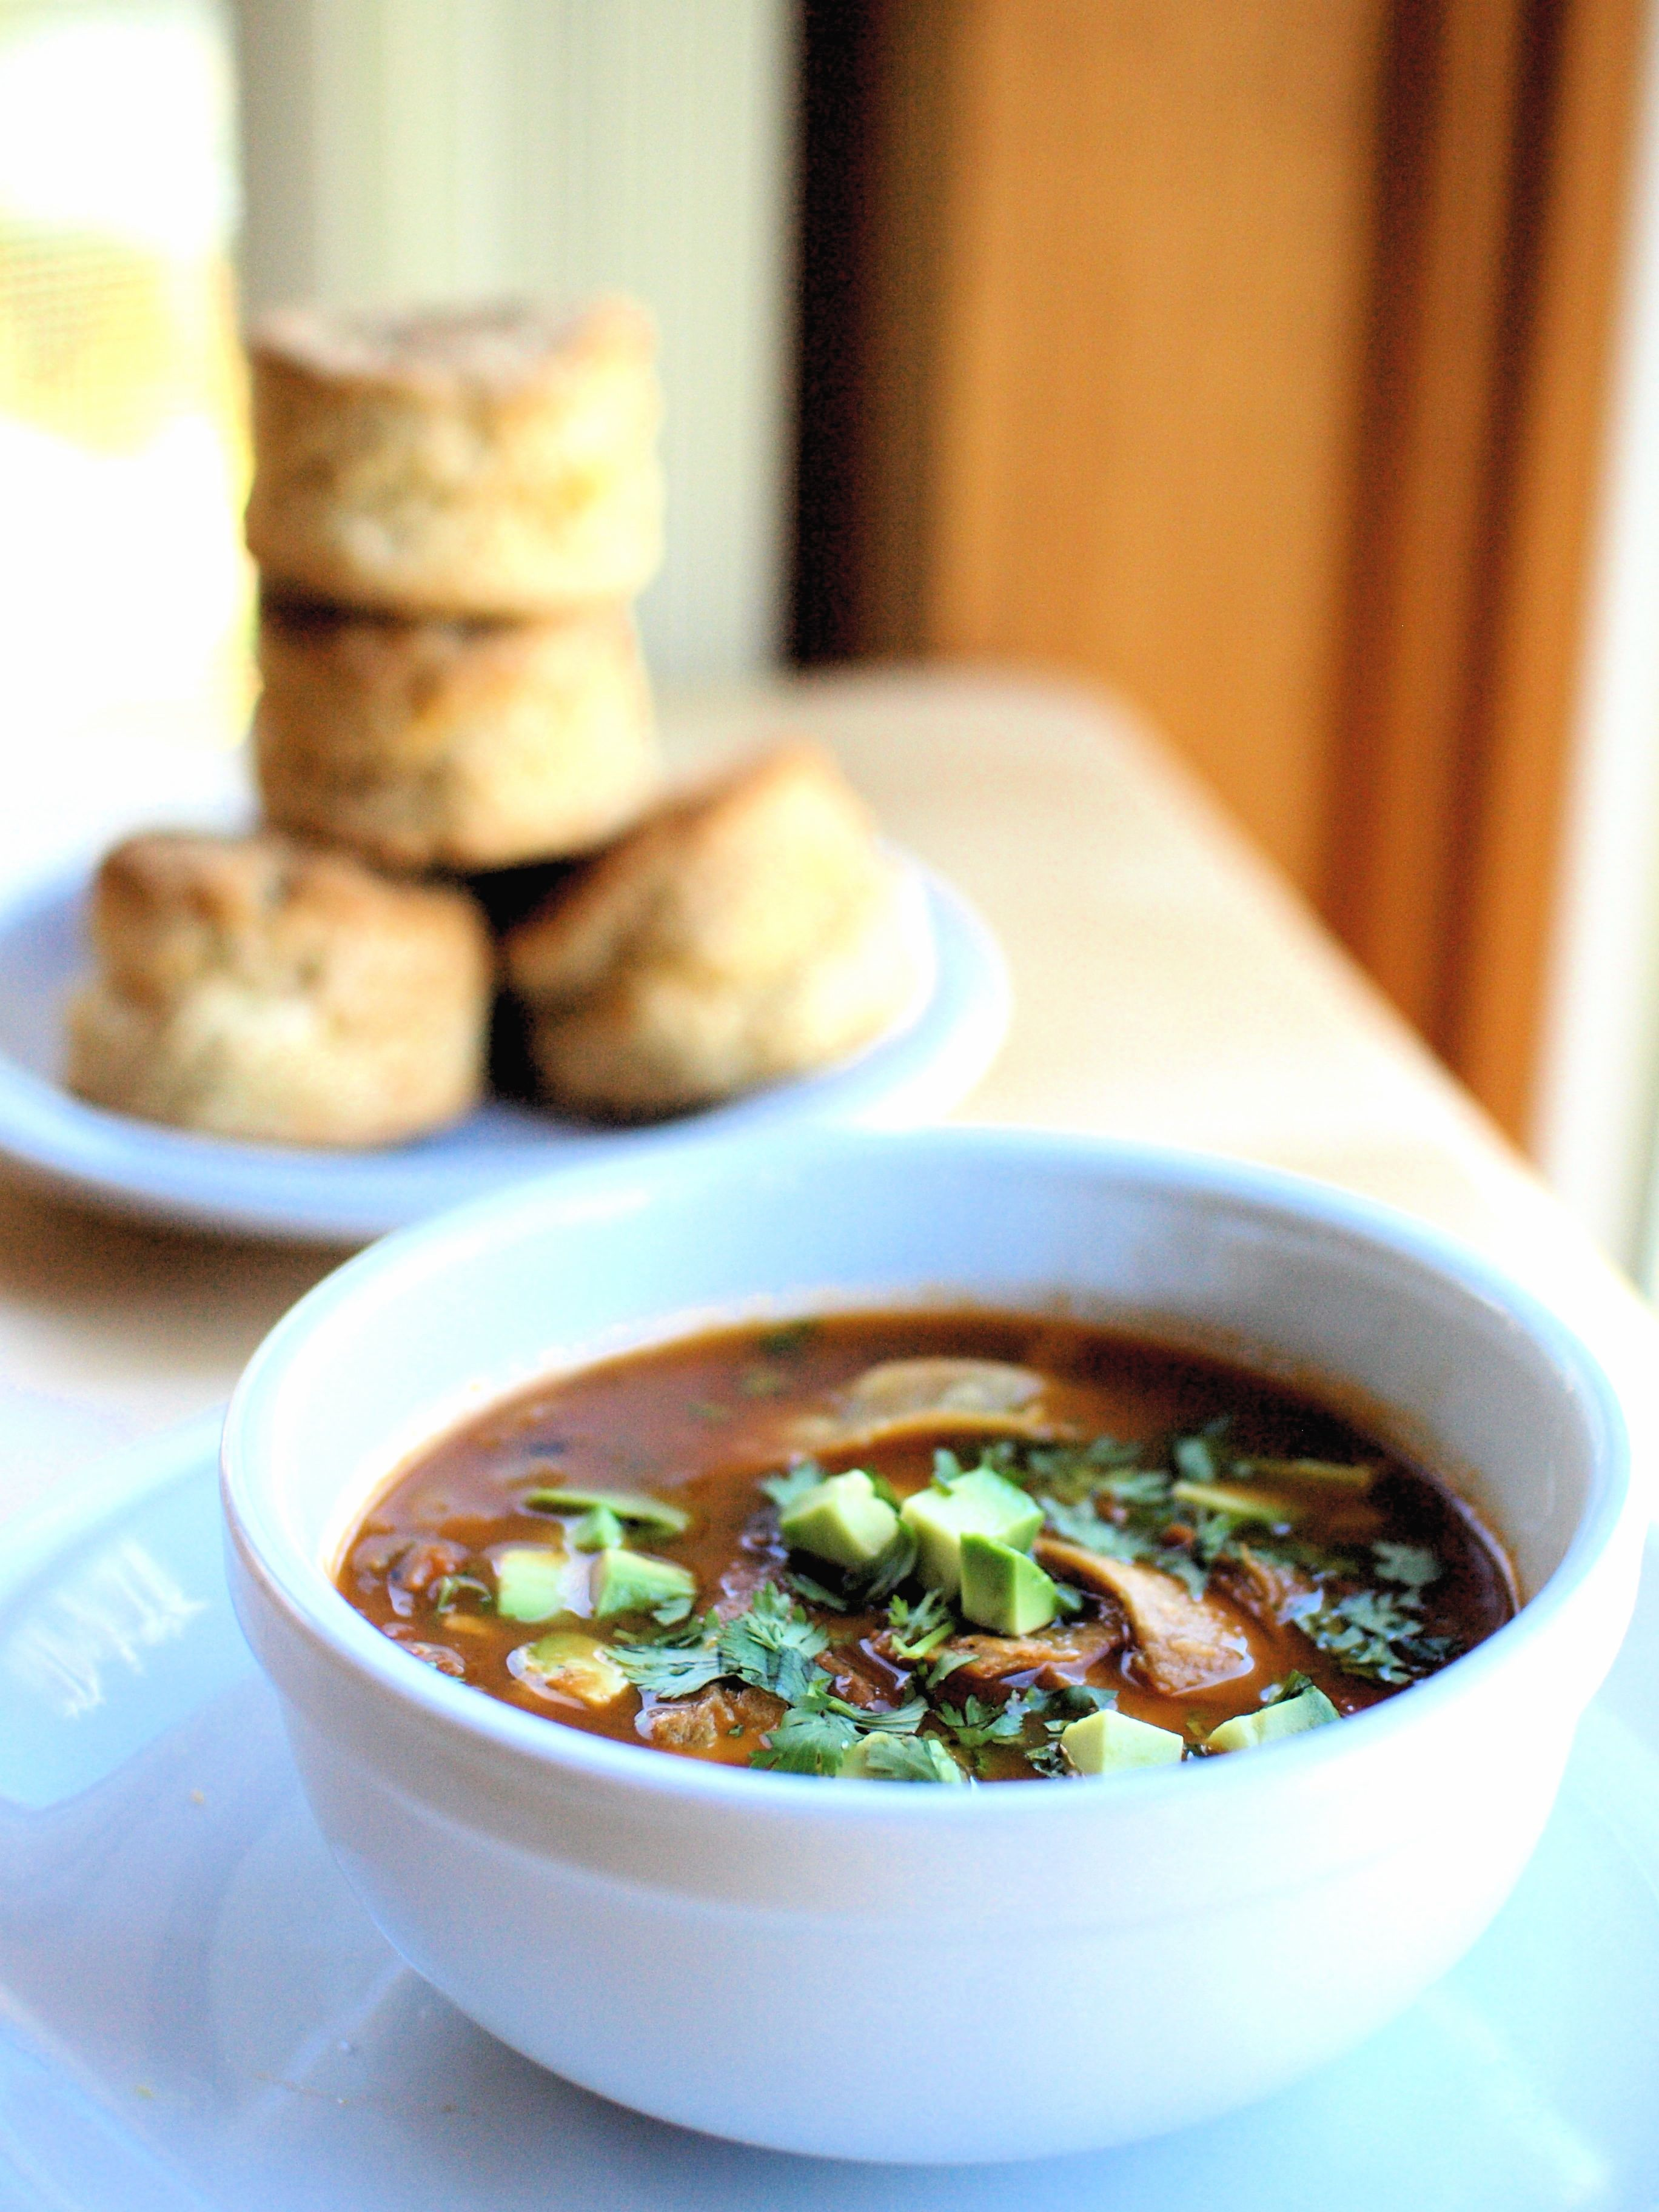 Spicy tortilla soup and cheddar biscuits